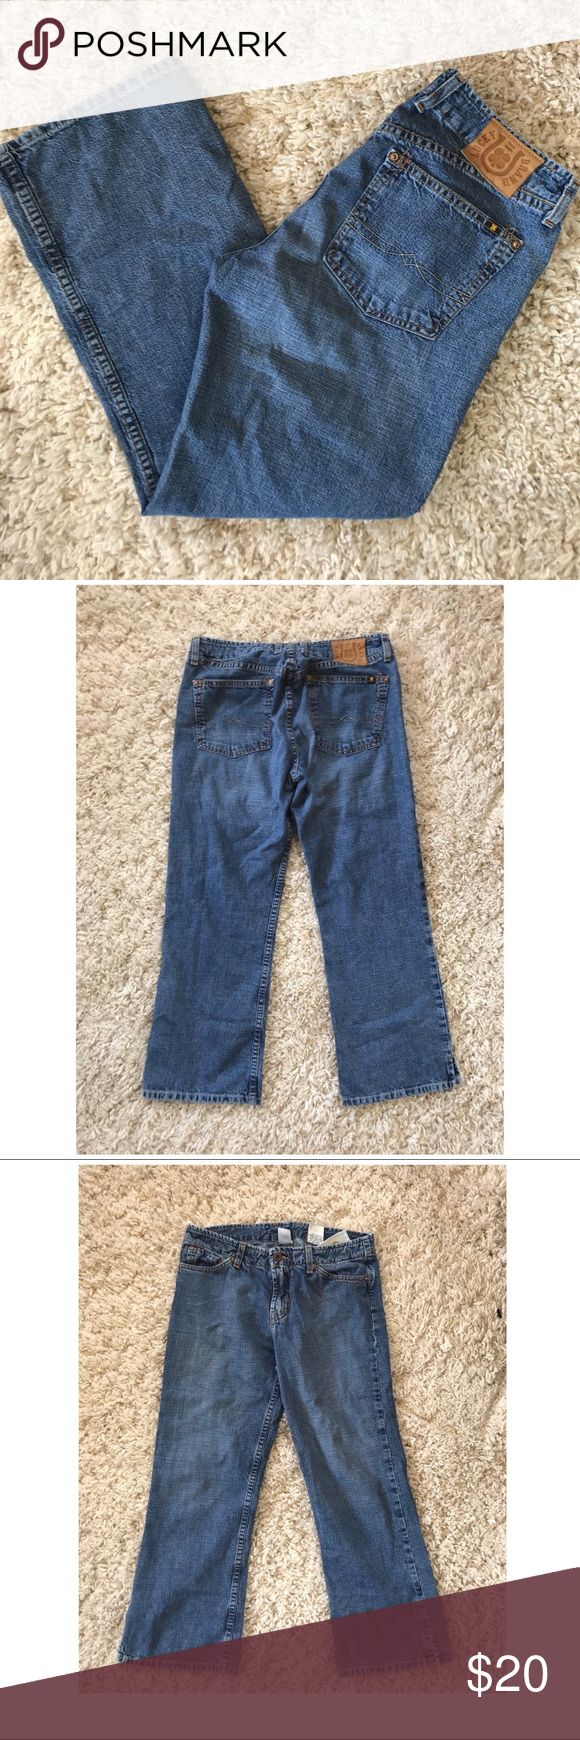 """Lucky Brand Dungarees Jeans Women's Size 4 / 27 True waist is 28"""" In good used condition  Lucky Brand Dungarees Jeans Women's Size 4 / 27 Wild Child Inseam 23 Crop  Length top to bottom 31"""" Lucky Brand Pants Ankle & Cropped"""